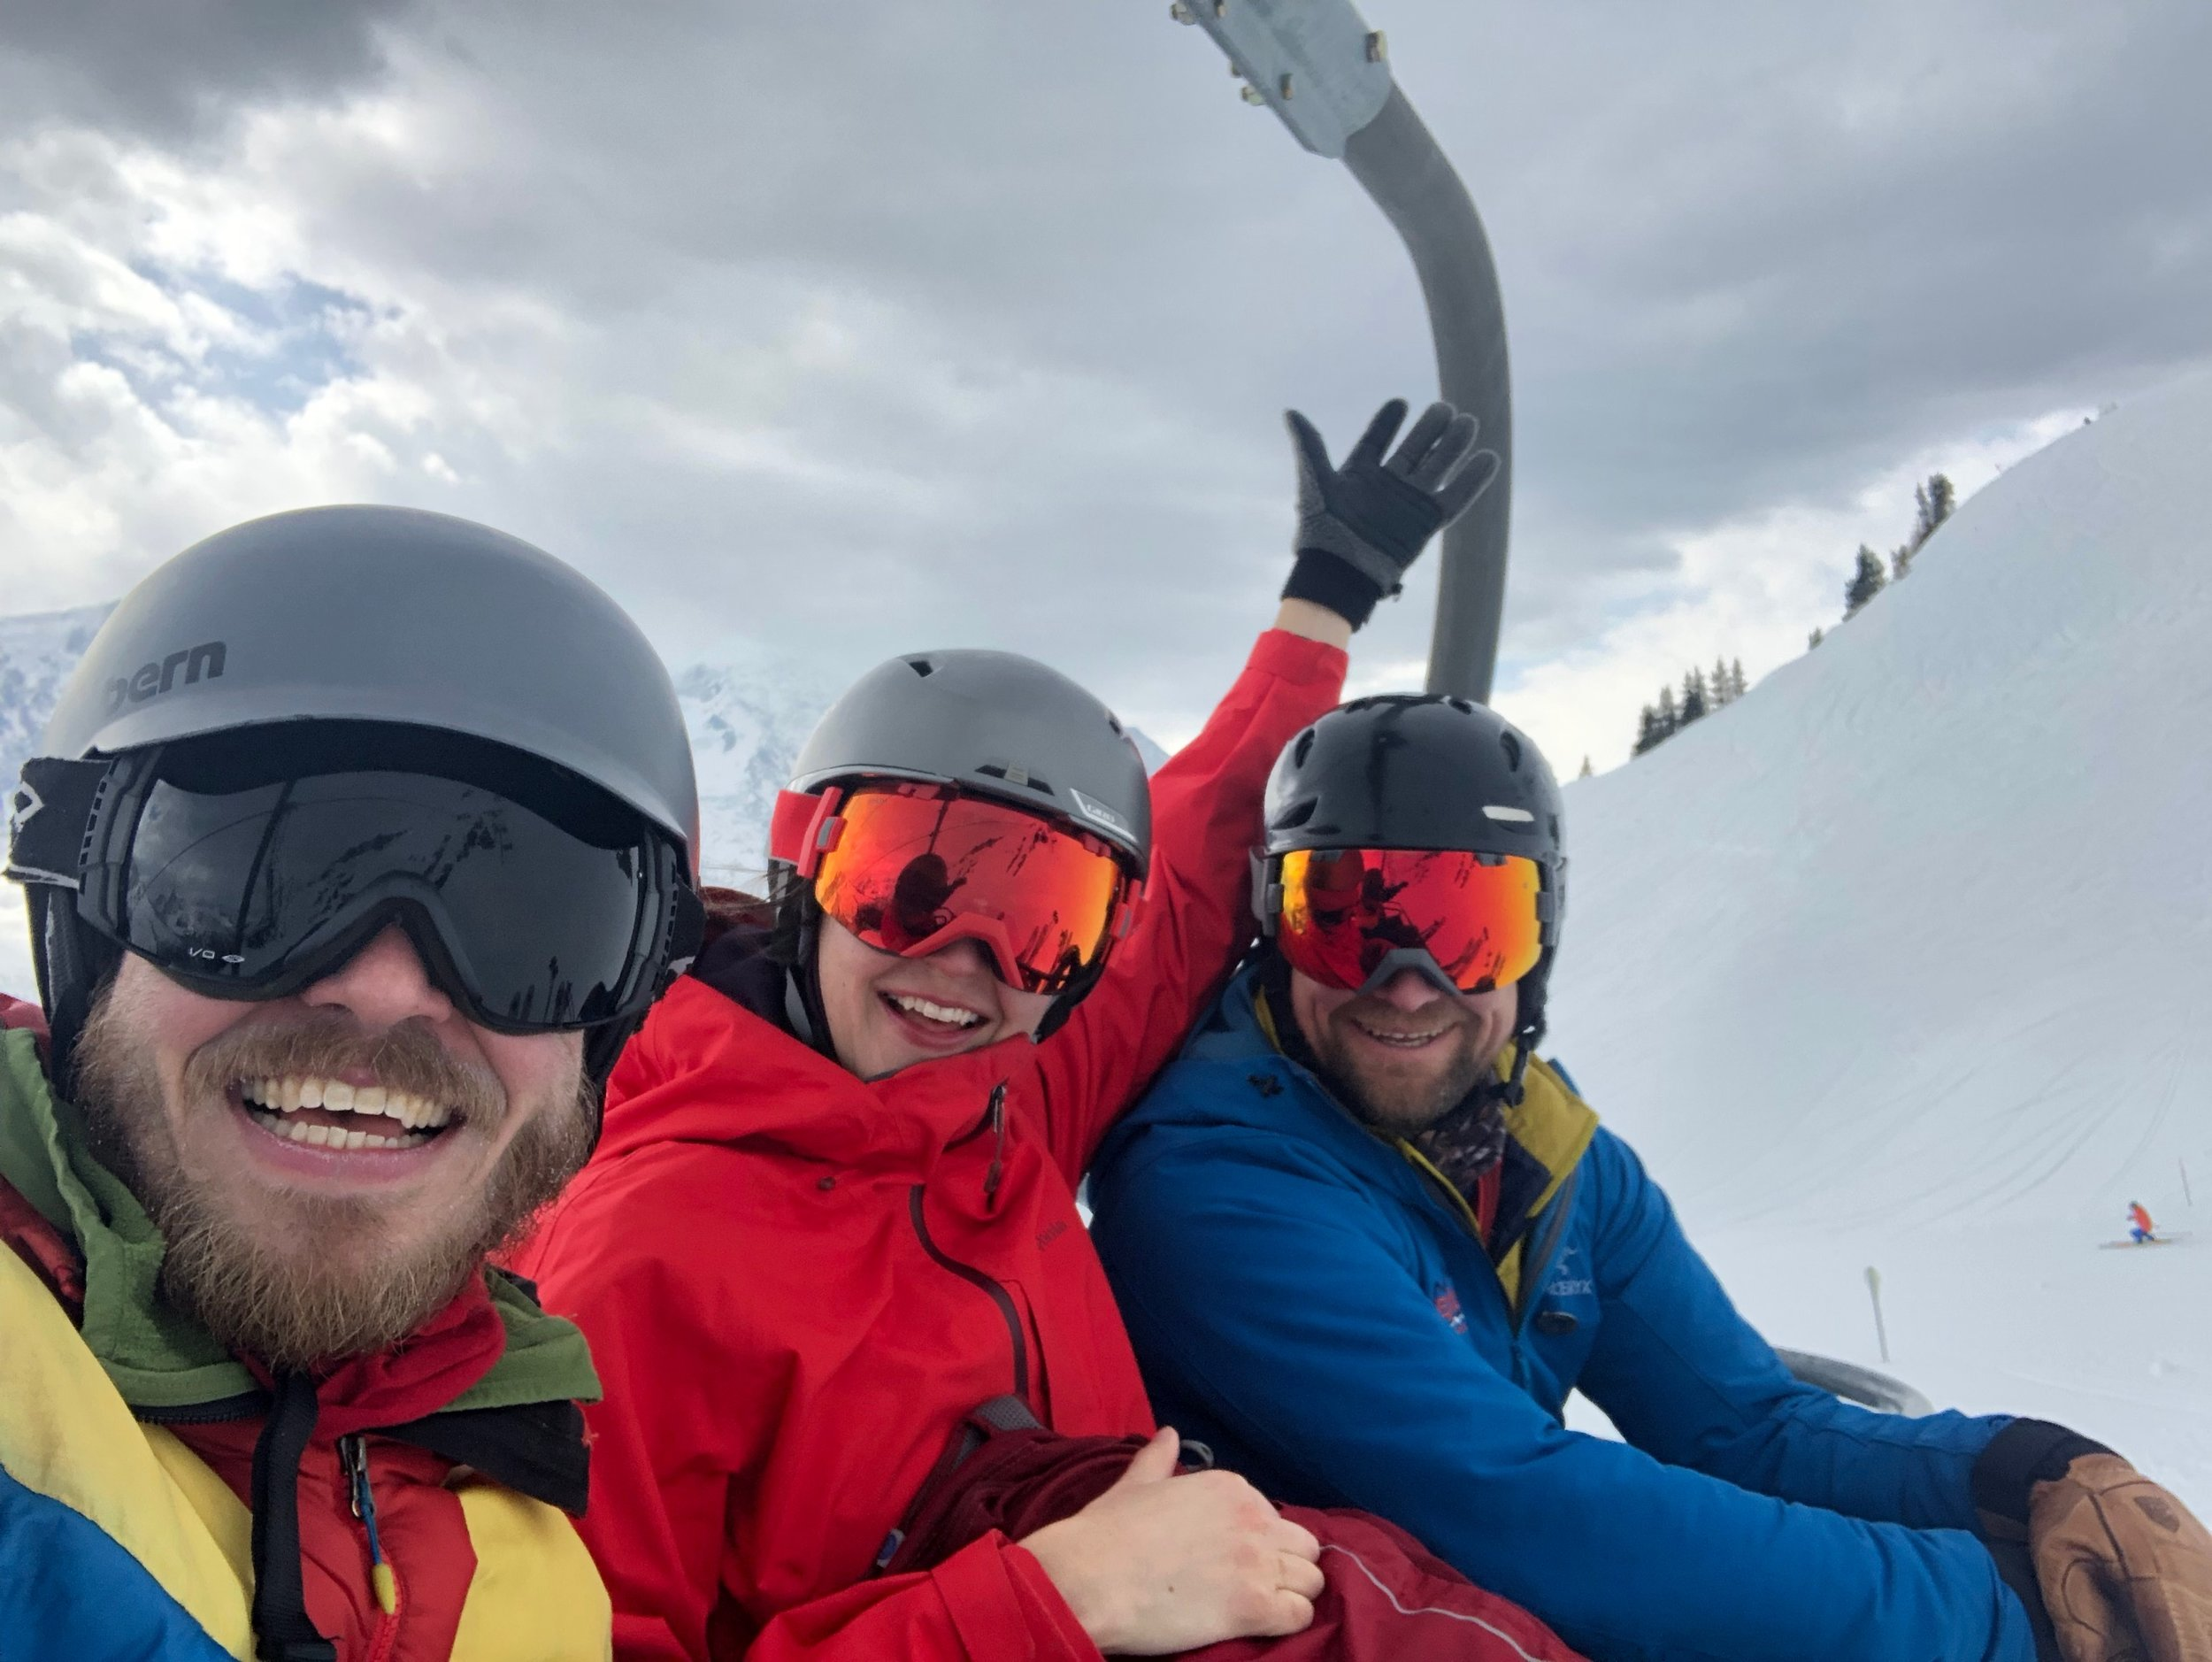 First day skiing in Cham! Virginia tore her ACL earlier in the season, and was having surgery the following week, but that wasn't going to slow her down.